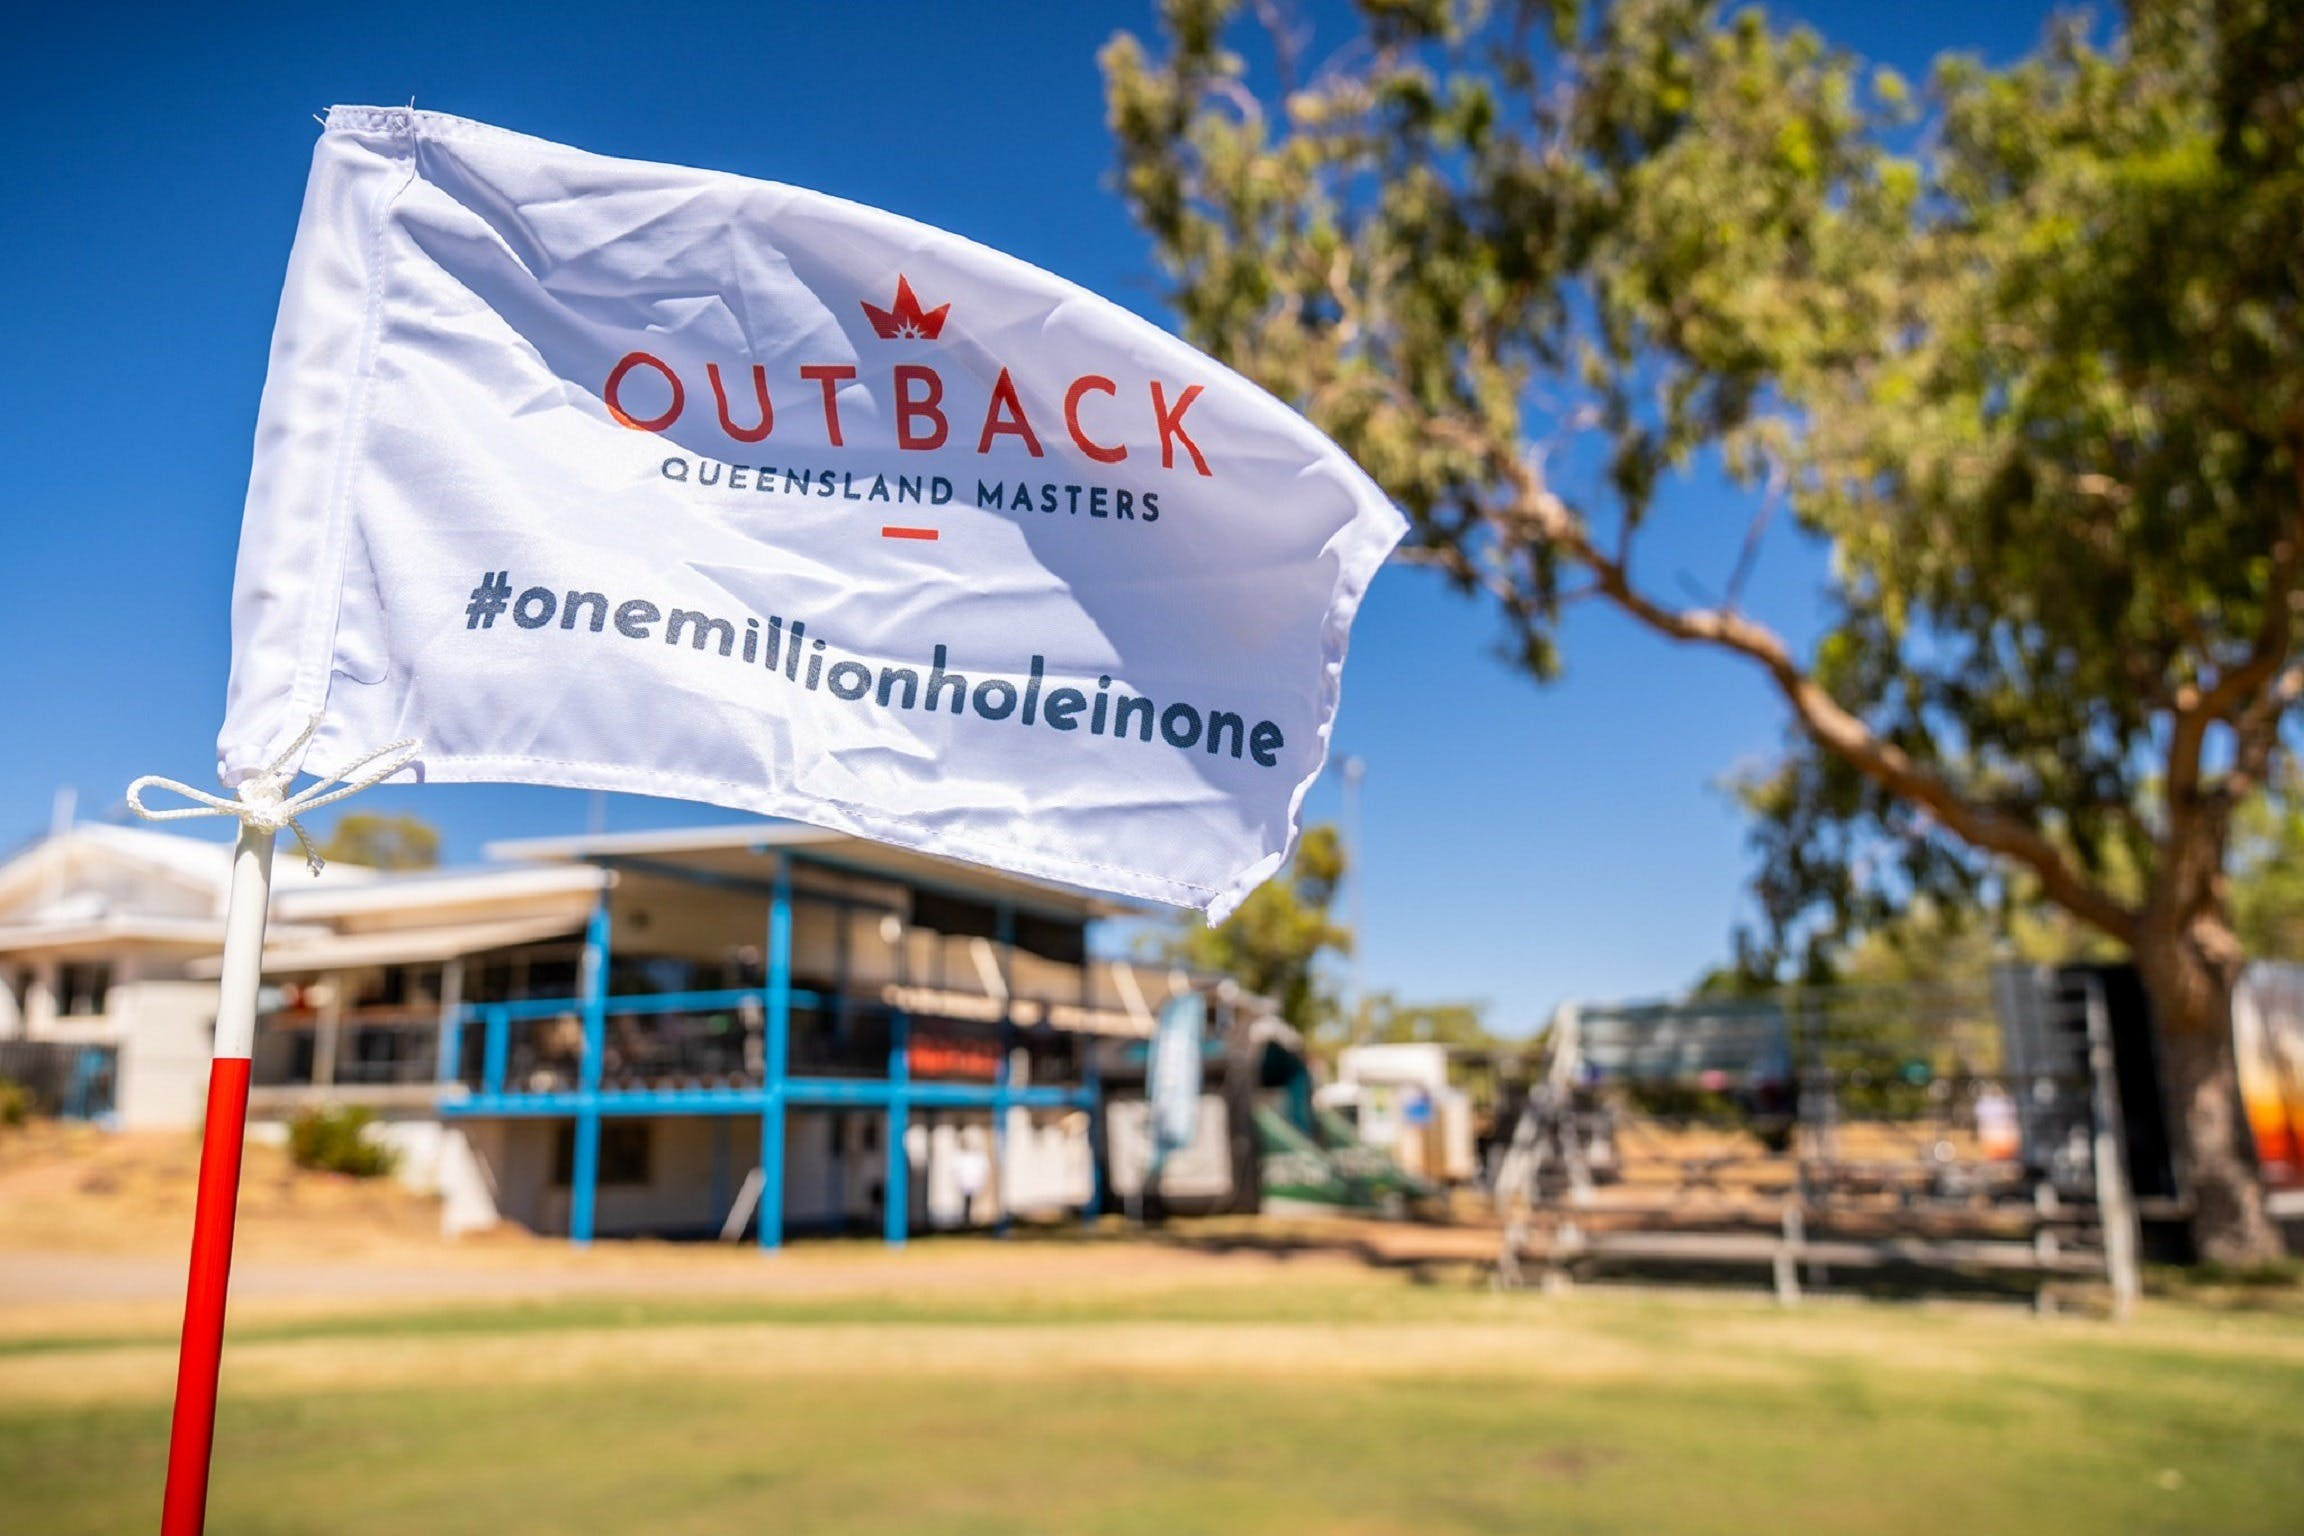 Outback Queensland Masters Charleville Leg 2021 - Accommodation Great Ocean Road